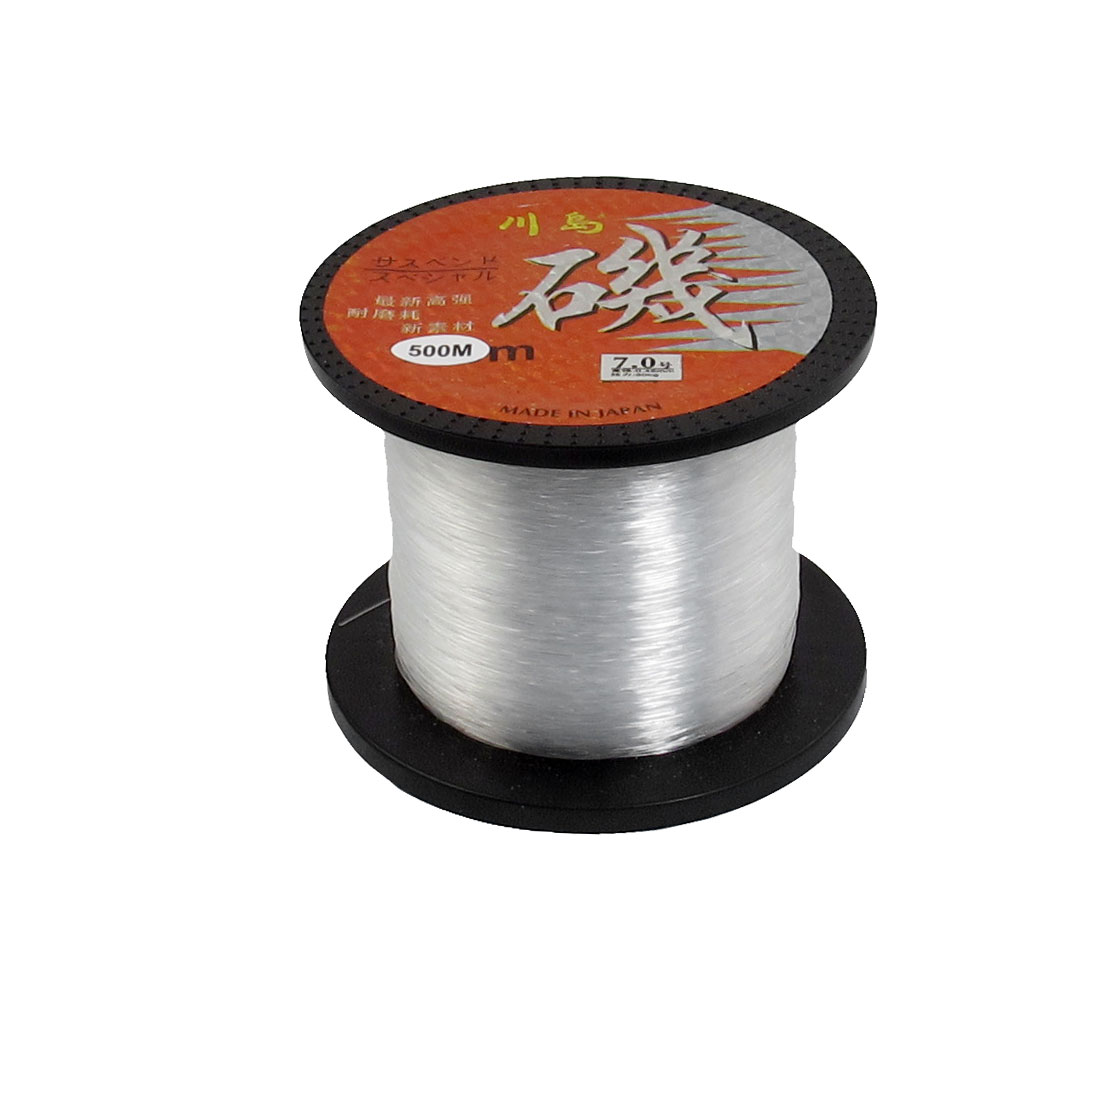 7# 30Kg 0.45mm Dia 500M Long Clear Line Fishing Thread Spool